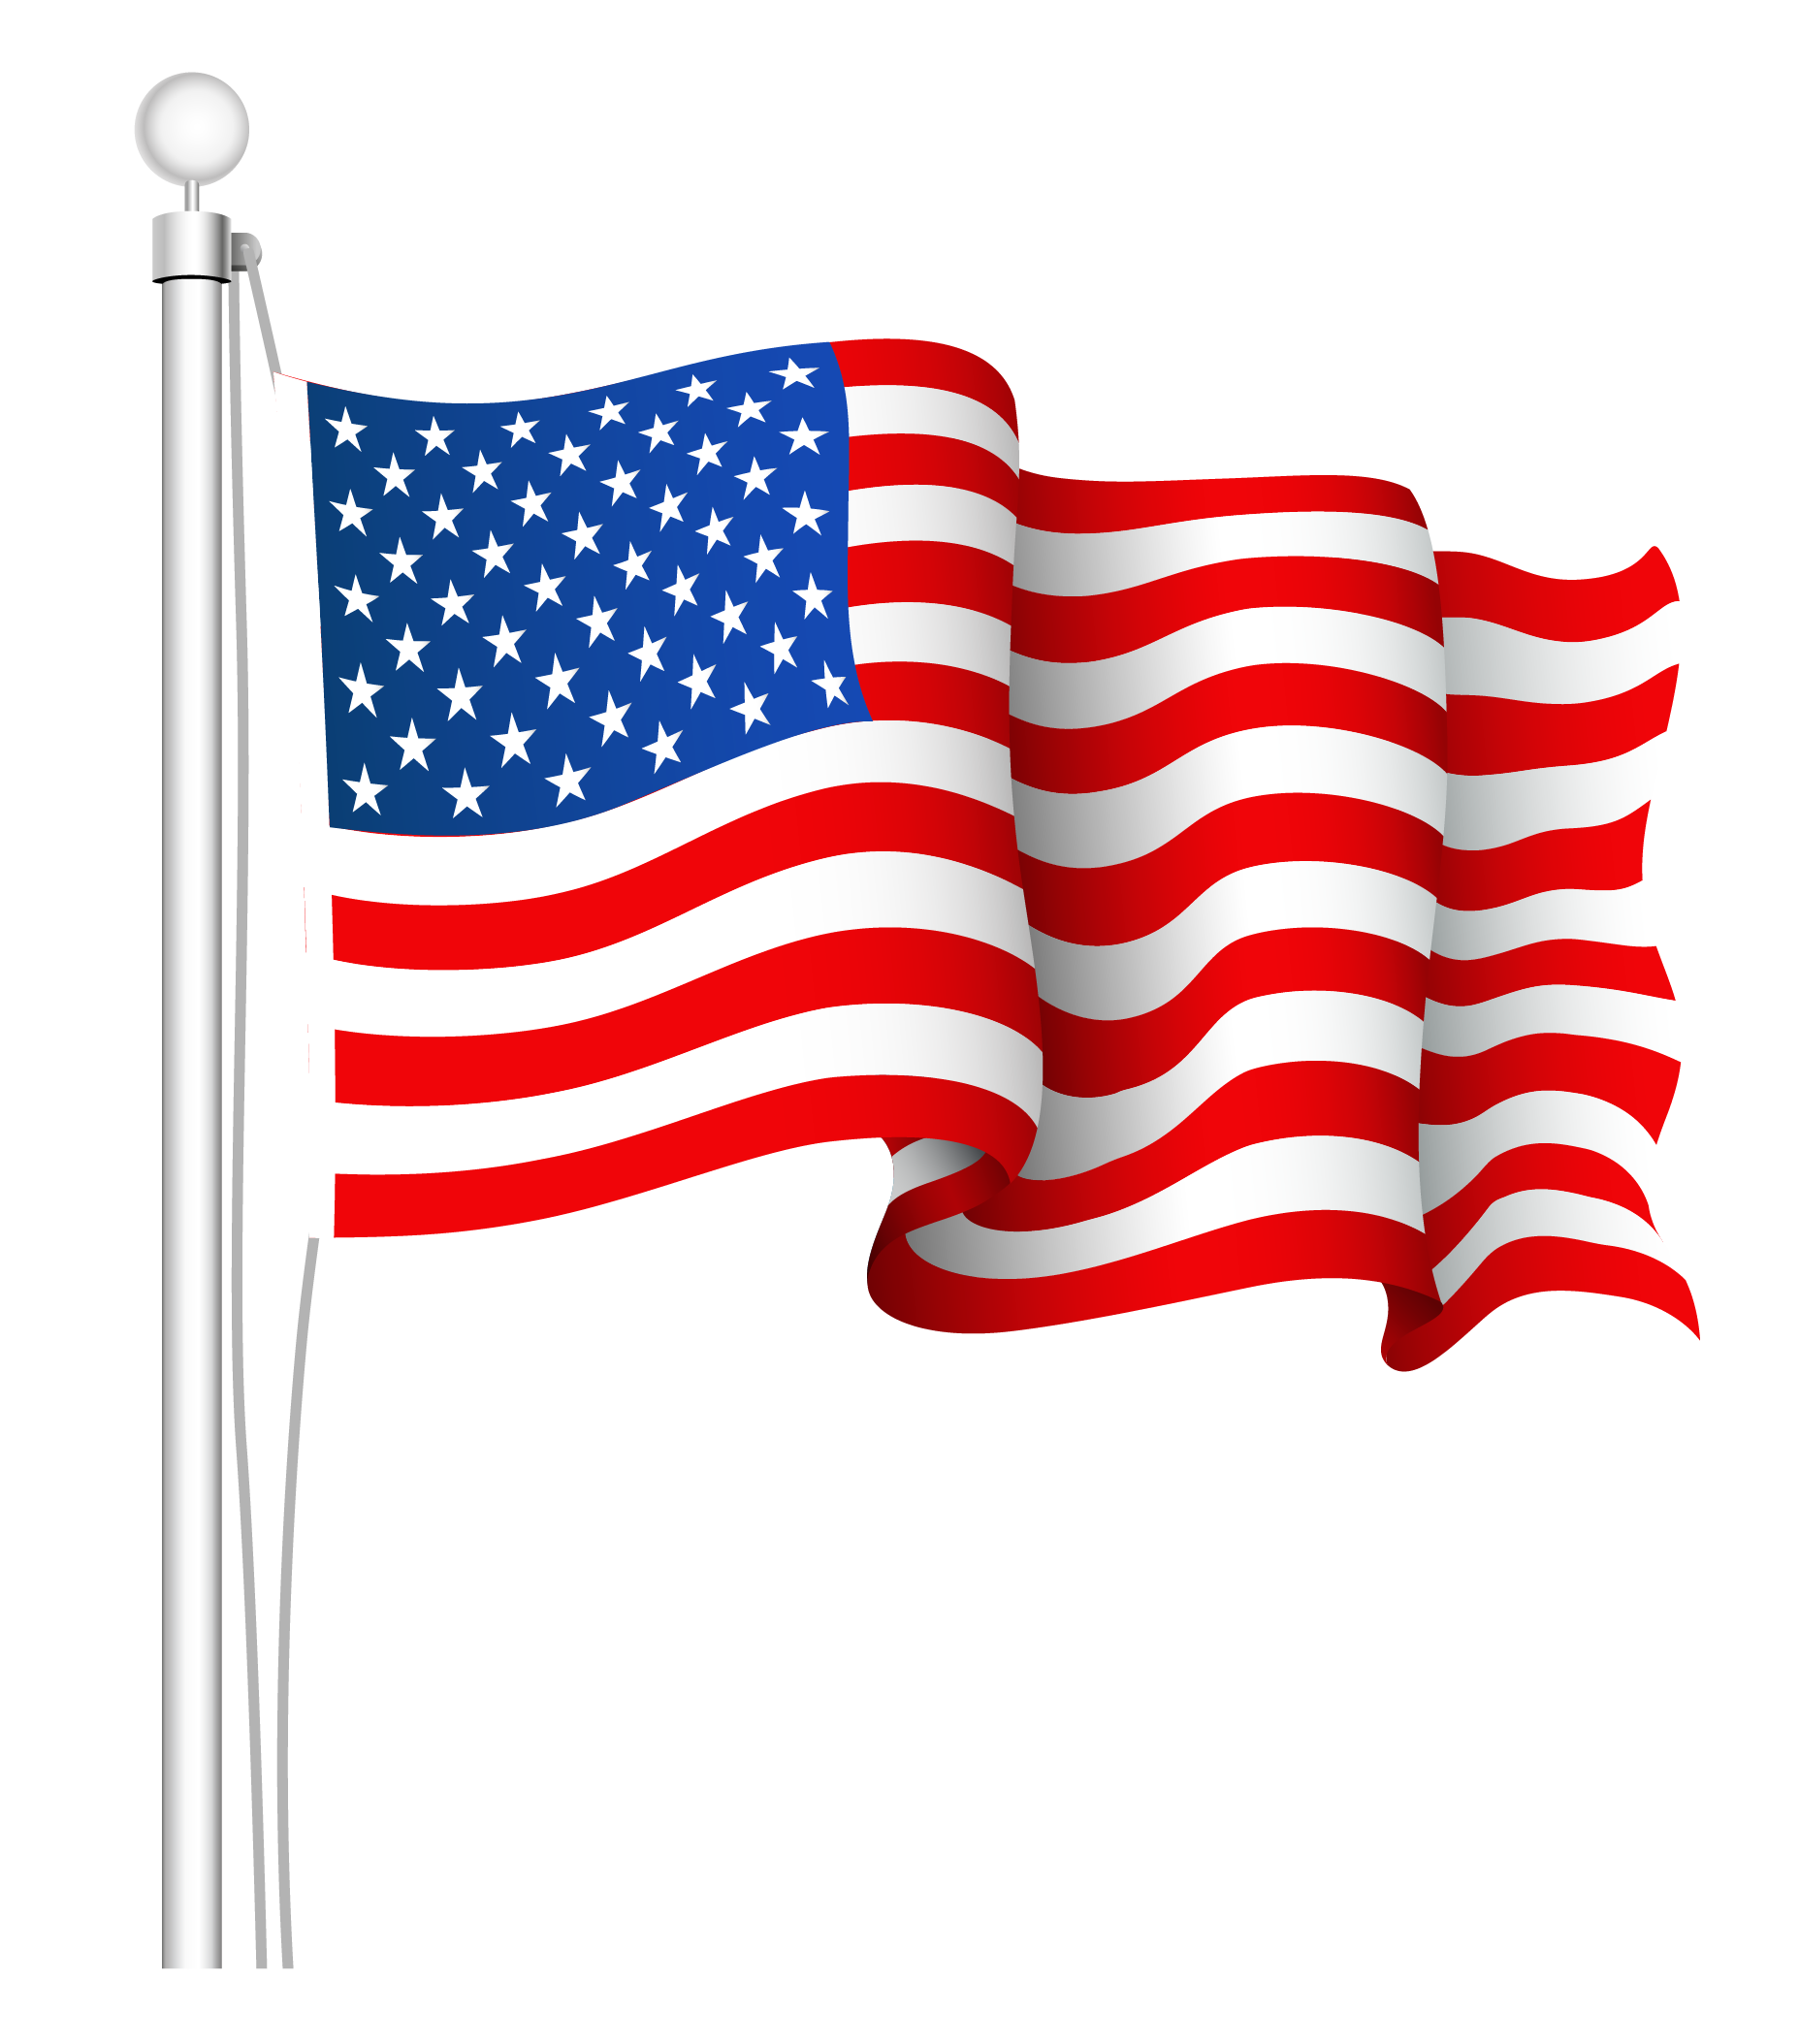 United States Flag Clip Art Cliparts Co-United States Flag Clip Art Cliparts Co-3